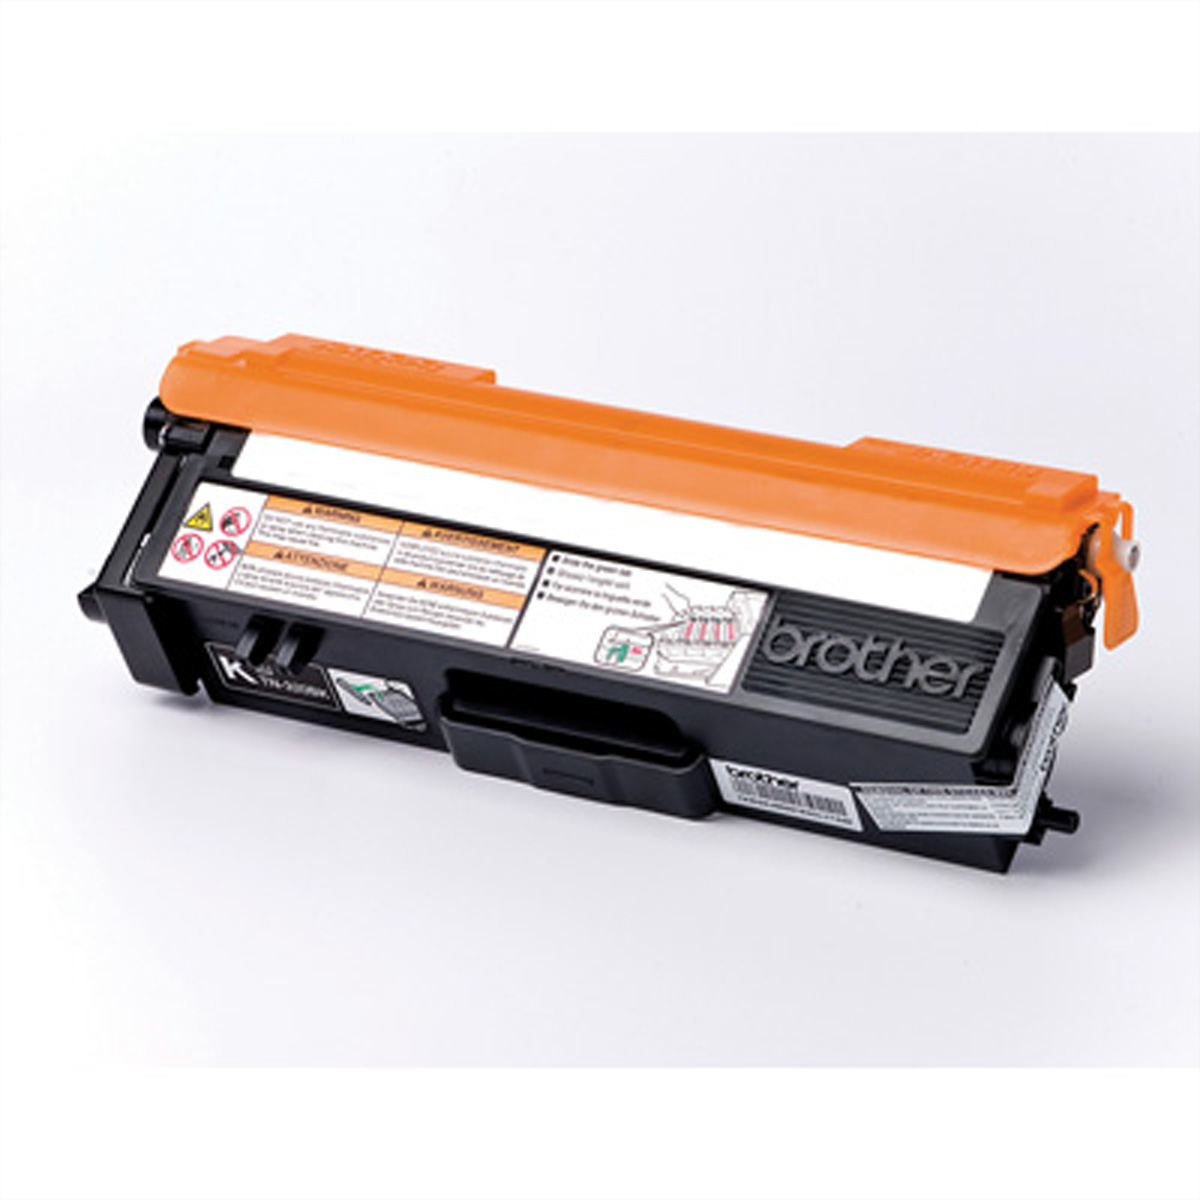 TN230BK, BROTHER Tonercartridge, schwarz für HL 3040CN / 3070CW / DCP9010 / MFC9